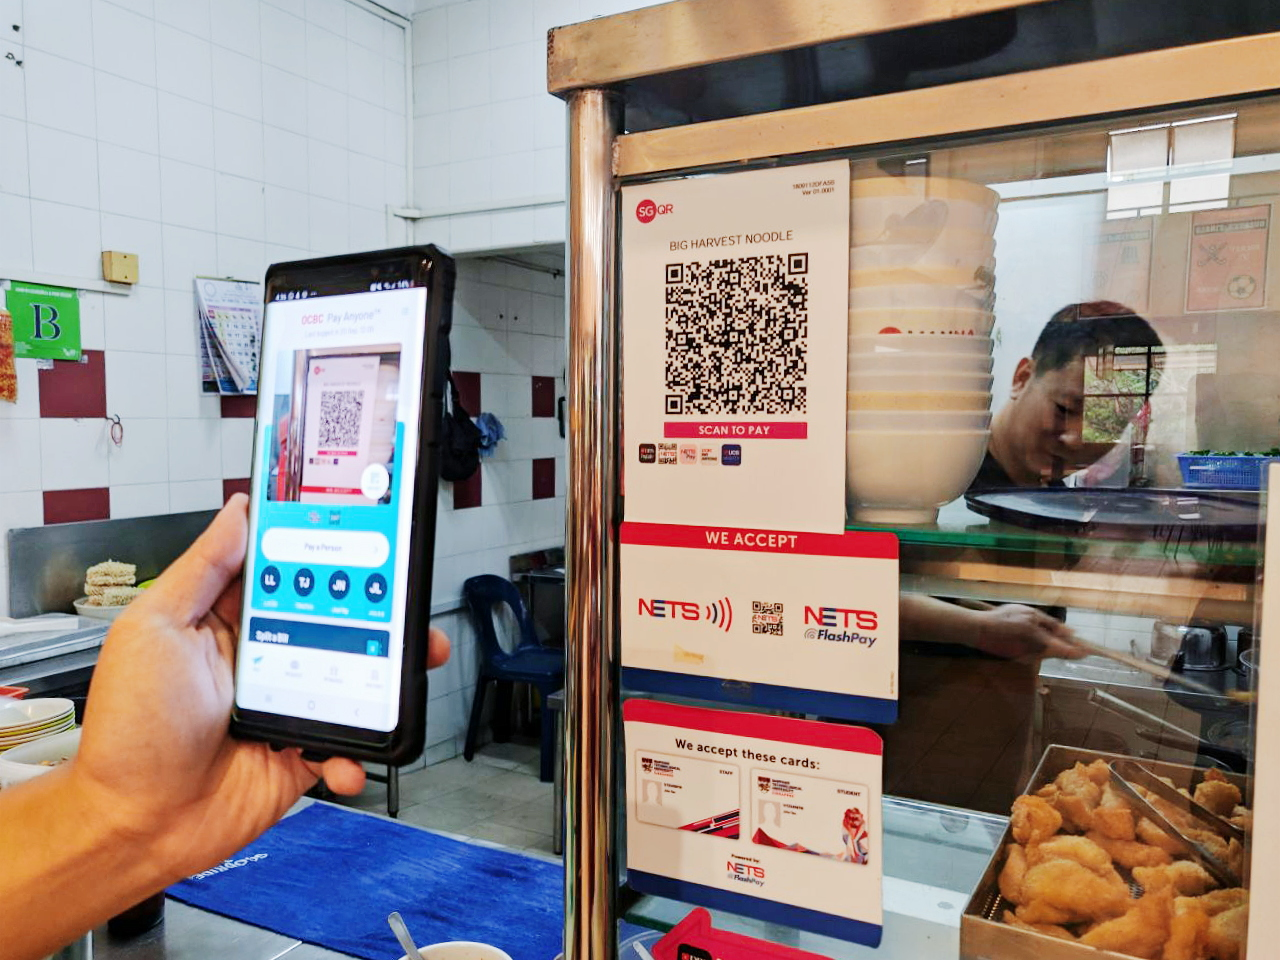 NETS QR codes like this one at the Big Harvest Ban Mian stall in Canteen 14 are available at most establishments in NTU. Mobile payments have become a common way to pay for food in the university. (PHOTO: Osmond Chia)